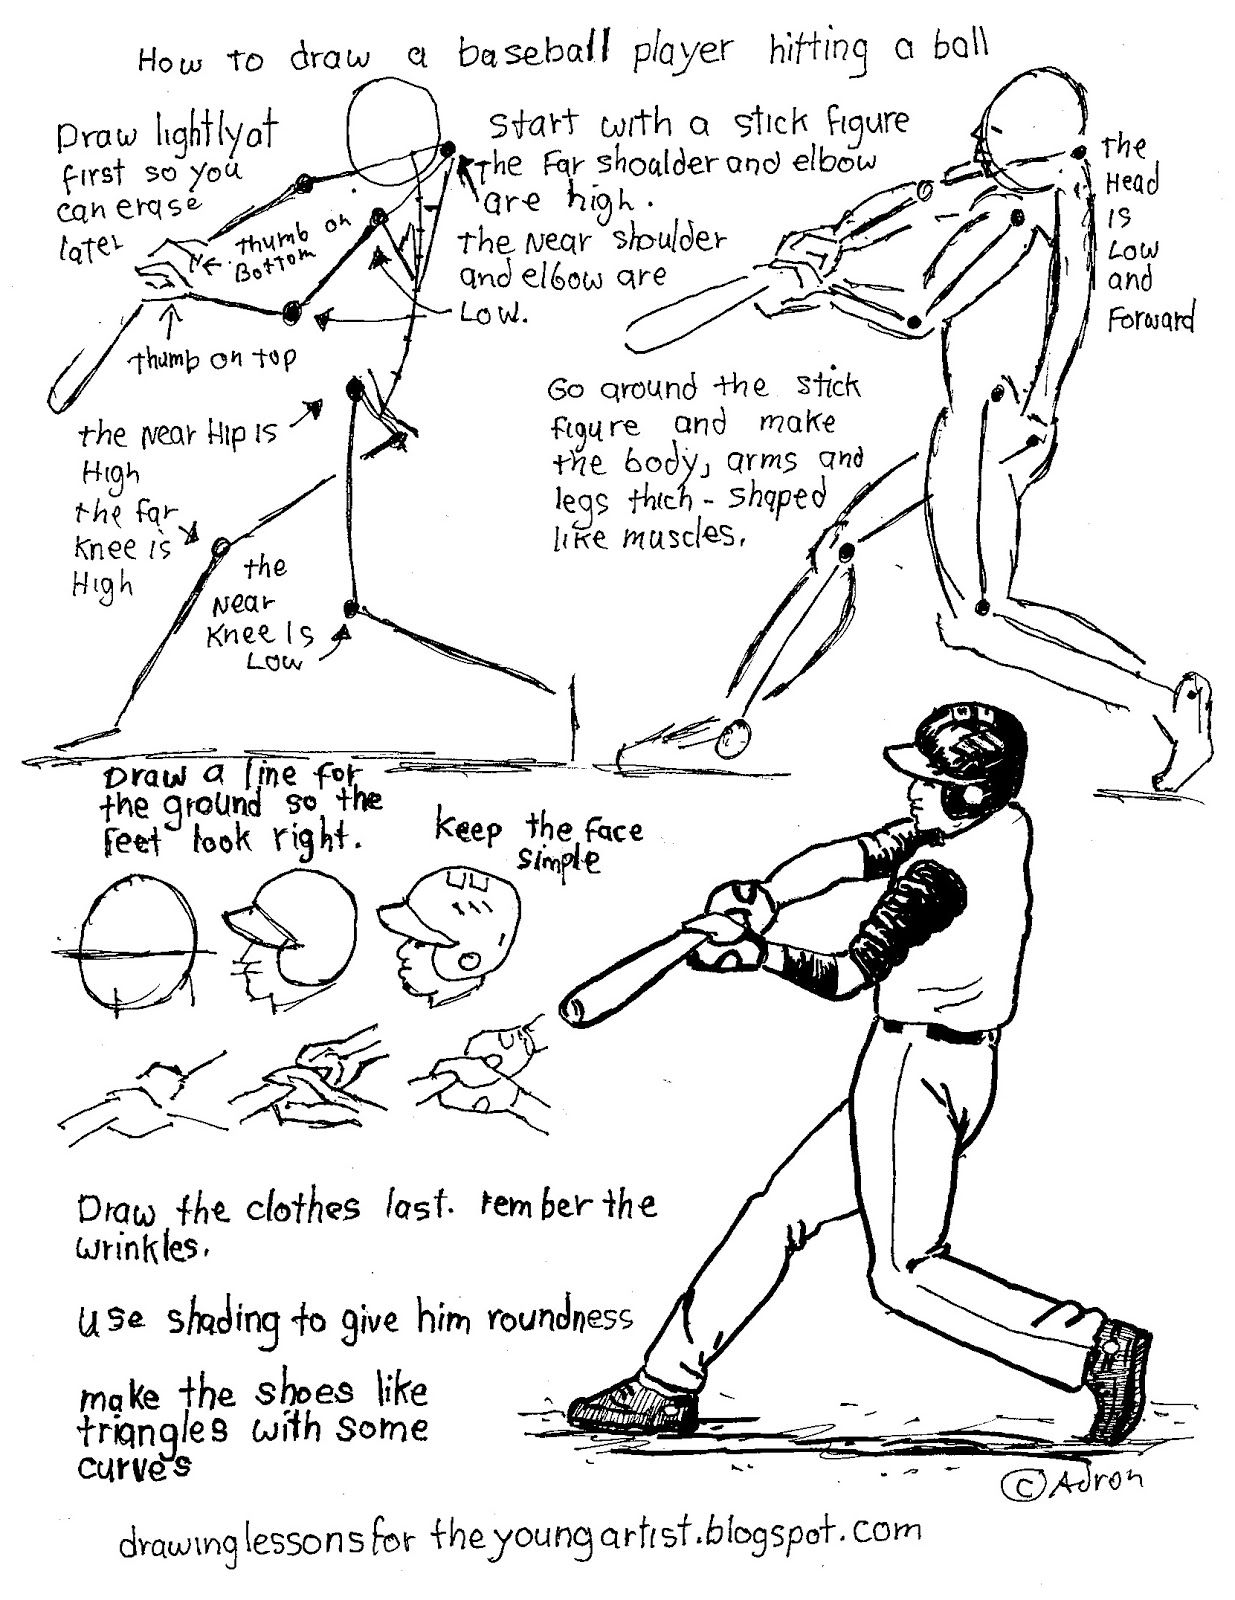 How To Draw A Baseball Player Hitting A Ball Worksheet